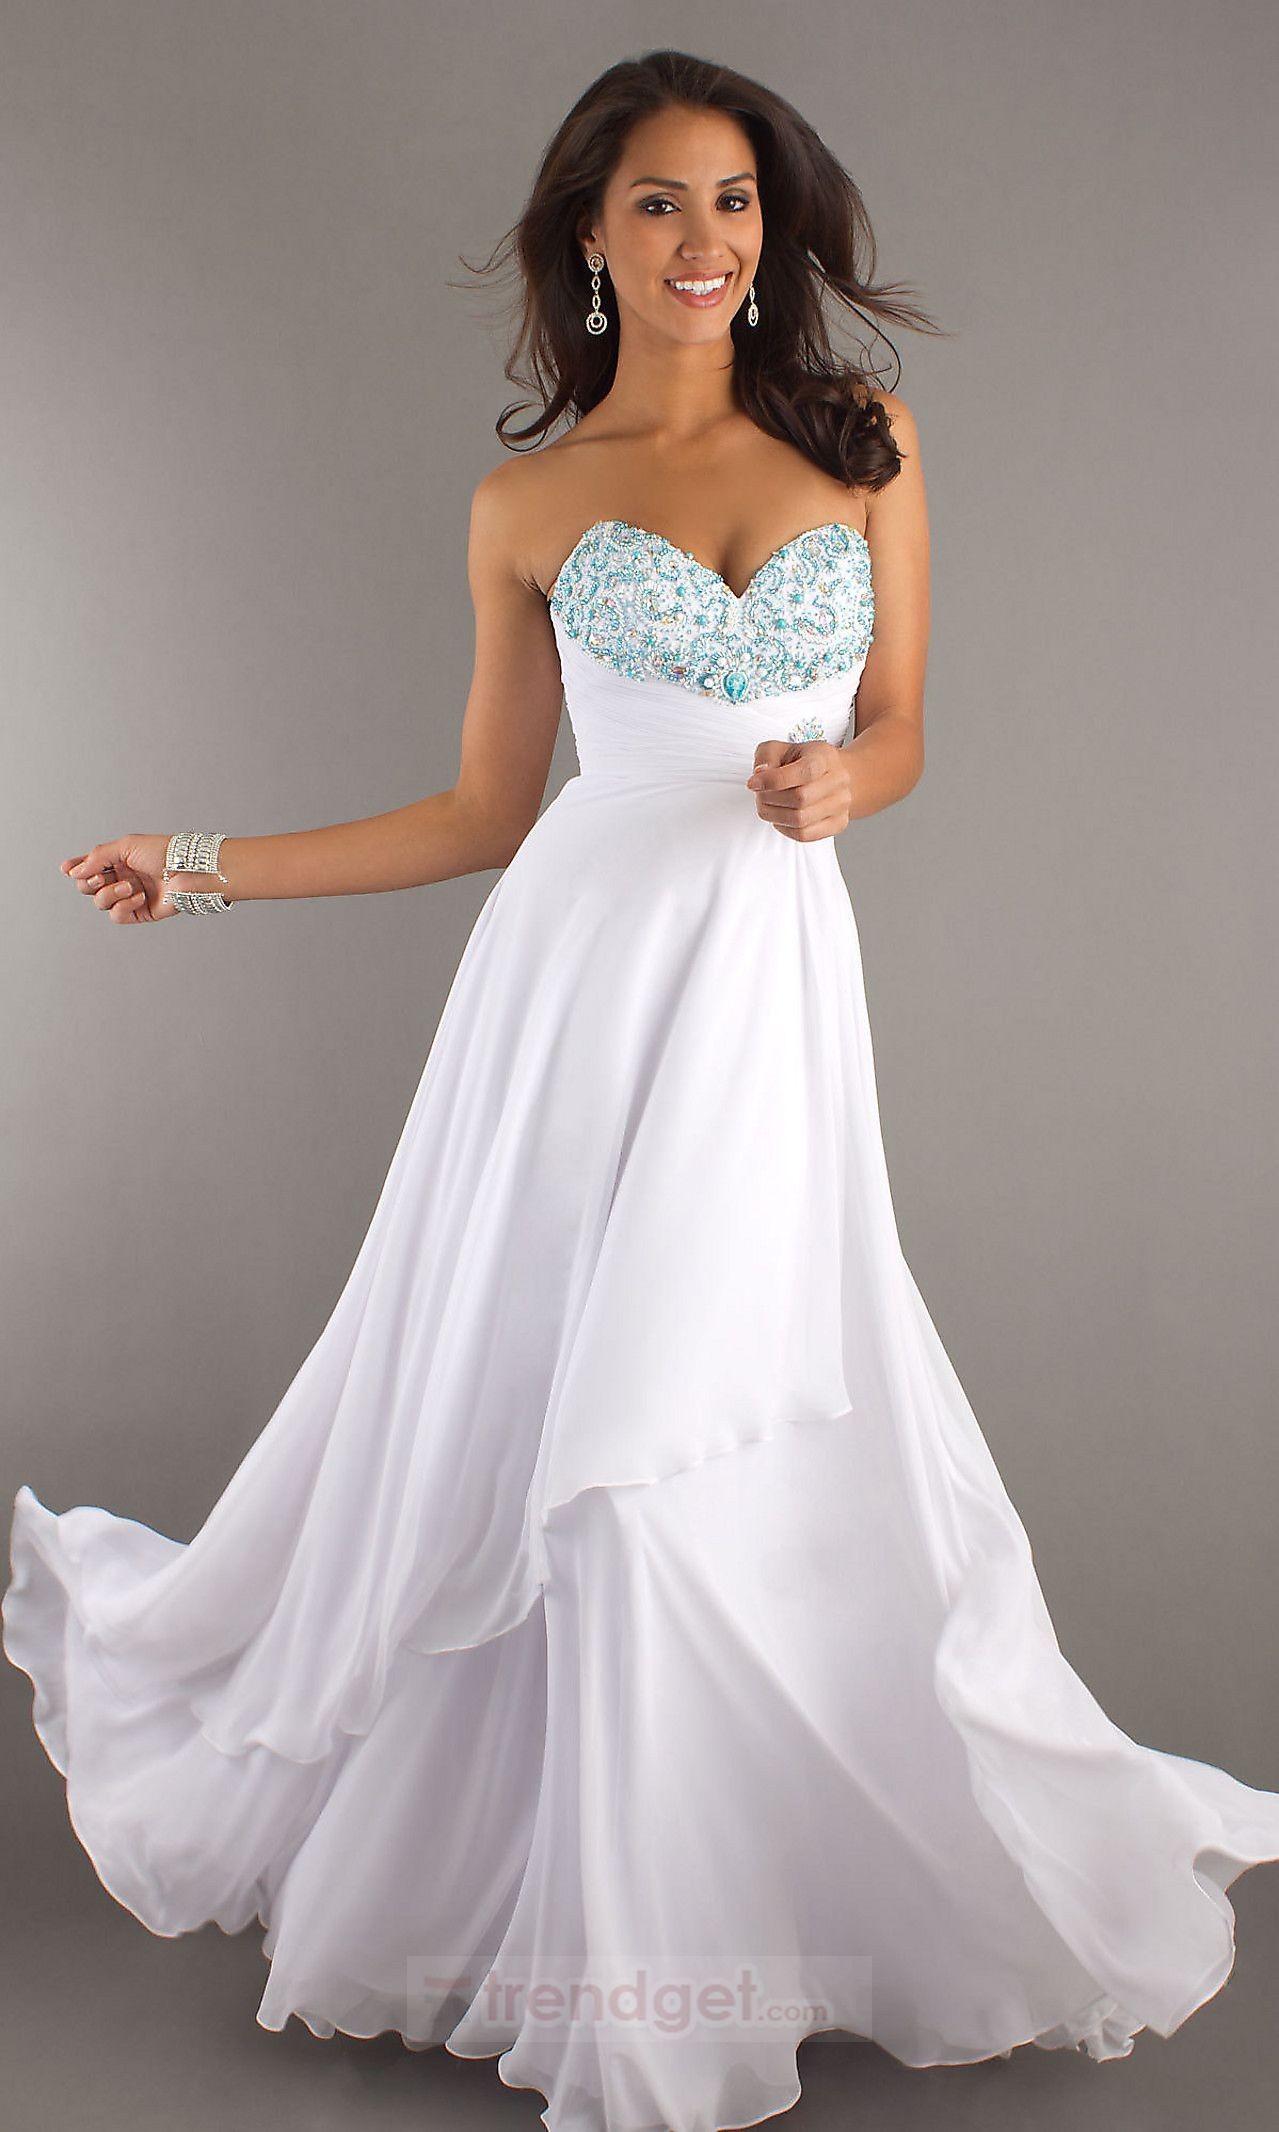 1000  images about mitiltray ball dresses on Pinterest | Prom ...